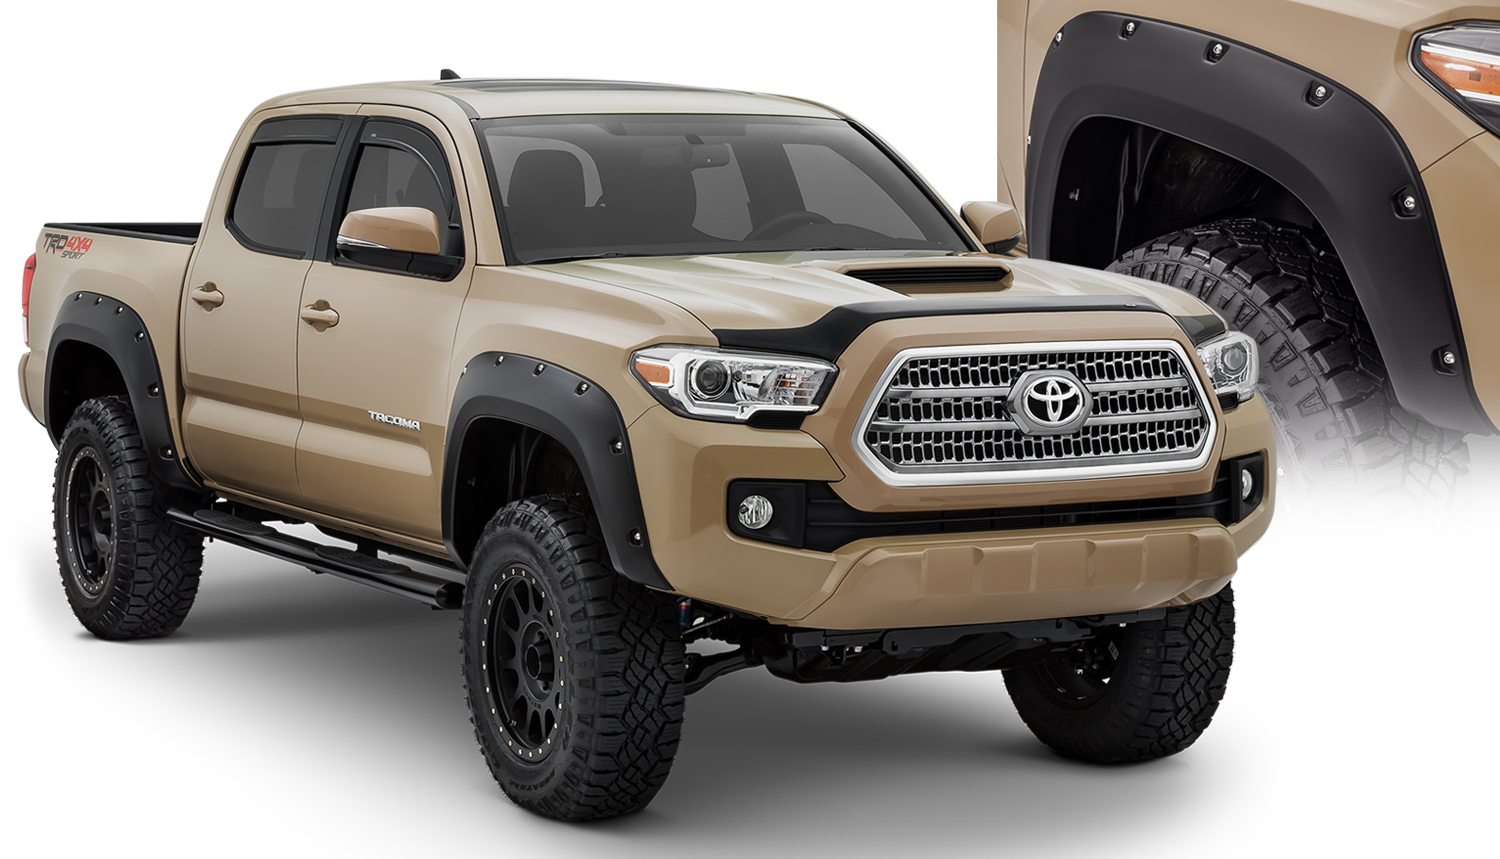 2016 toyota tacoma pocket style fender flares 30922 02 pure tacoma accessories. Black Bedroom Furniture Sets. Home Design Ideas